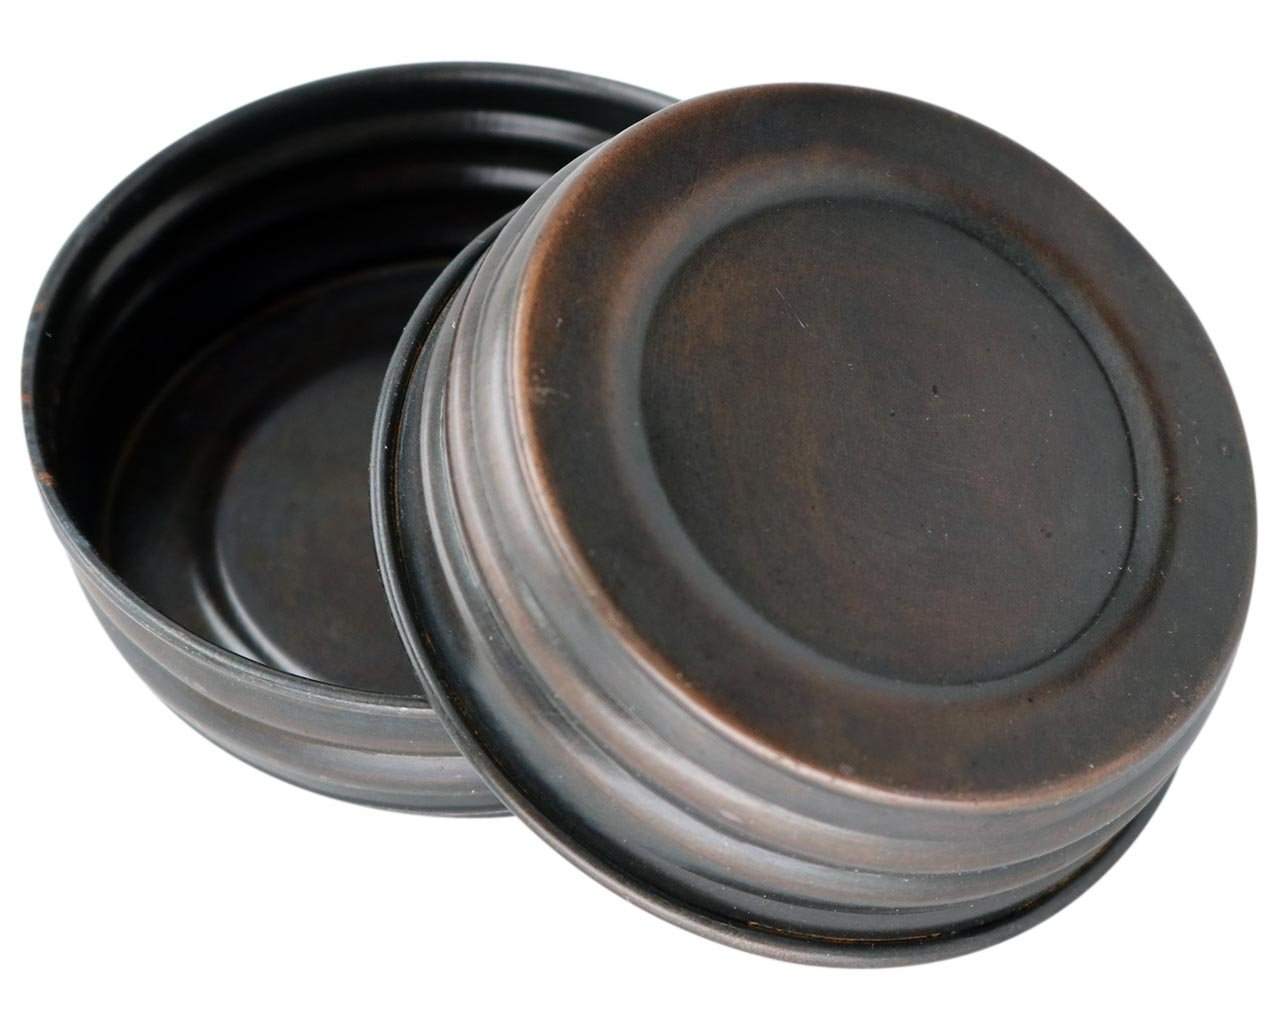 Oil Rubbed Bronze Vintage Reproduction Lids for Mason, Ball, Canning Jars (4 Pack, Regular Mouth)